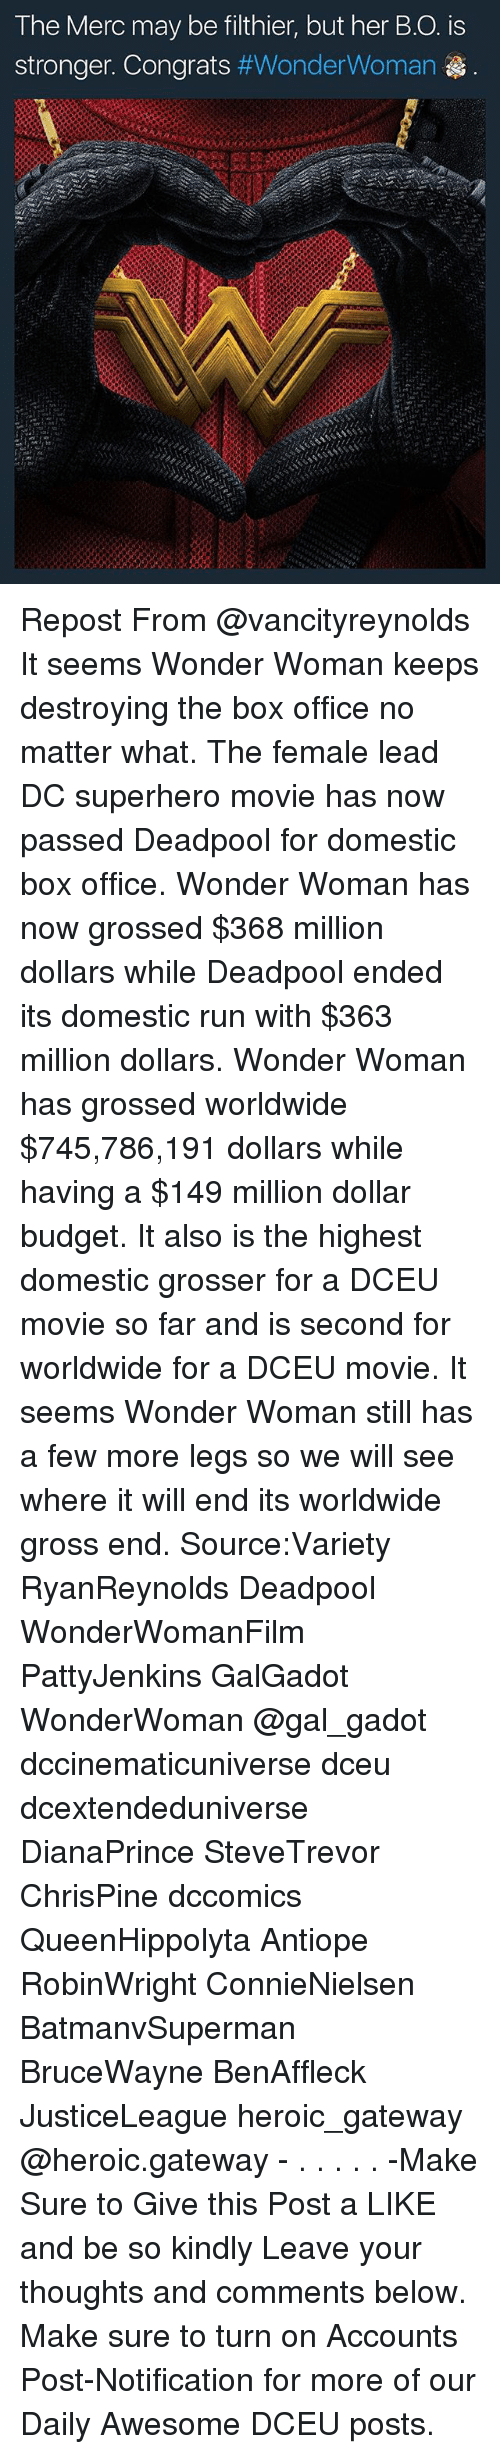 Superhero Movie: The Merc may be filthier, but her B.O. is  stronger. Congrats Repost From @vancityreynolds It seems Wonder Woman keeps destroying the box office no matter what. The female lead DC superhero movie has now passed Deadpool for domestic box office. Wonder Woman has now grossed $368 million dollars while Deadpool ended its domestic run with $363 million dollars. Wonder Woman has grossed worldwide $745,786,191 dollars while having a $149 million dollar budget. It also is the highest domestic grosser for a DCEU movie so far and is second for worldwide for a DCEU movie. It seems Wonder Woman still has a few more legs so we will see where it will end its worldwide gross end. Source:Variety RyanReynolds Deadpool WonderWomanFilm PattyJenkins GalGadot WonderWoman @gal_gadot dccinematicuniverse dceu dcextendeduniverse DianaPrince SteveTrevor ChrisPine dccomics QueenHippolyta Antiope RobinWright ConnieNielsen BatmanvSuperman BruceWayne BenAffleck JusticeLeague heroic_gateway @heroic.gateway - . . . . . -Make Sure to Give this Post a LIKE and be so kindly Leave your thoughts and comments below. Make sure to turn on Accounts Post-Notification for more of our Daily Awesome DCEU posts.